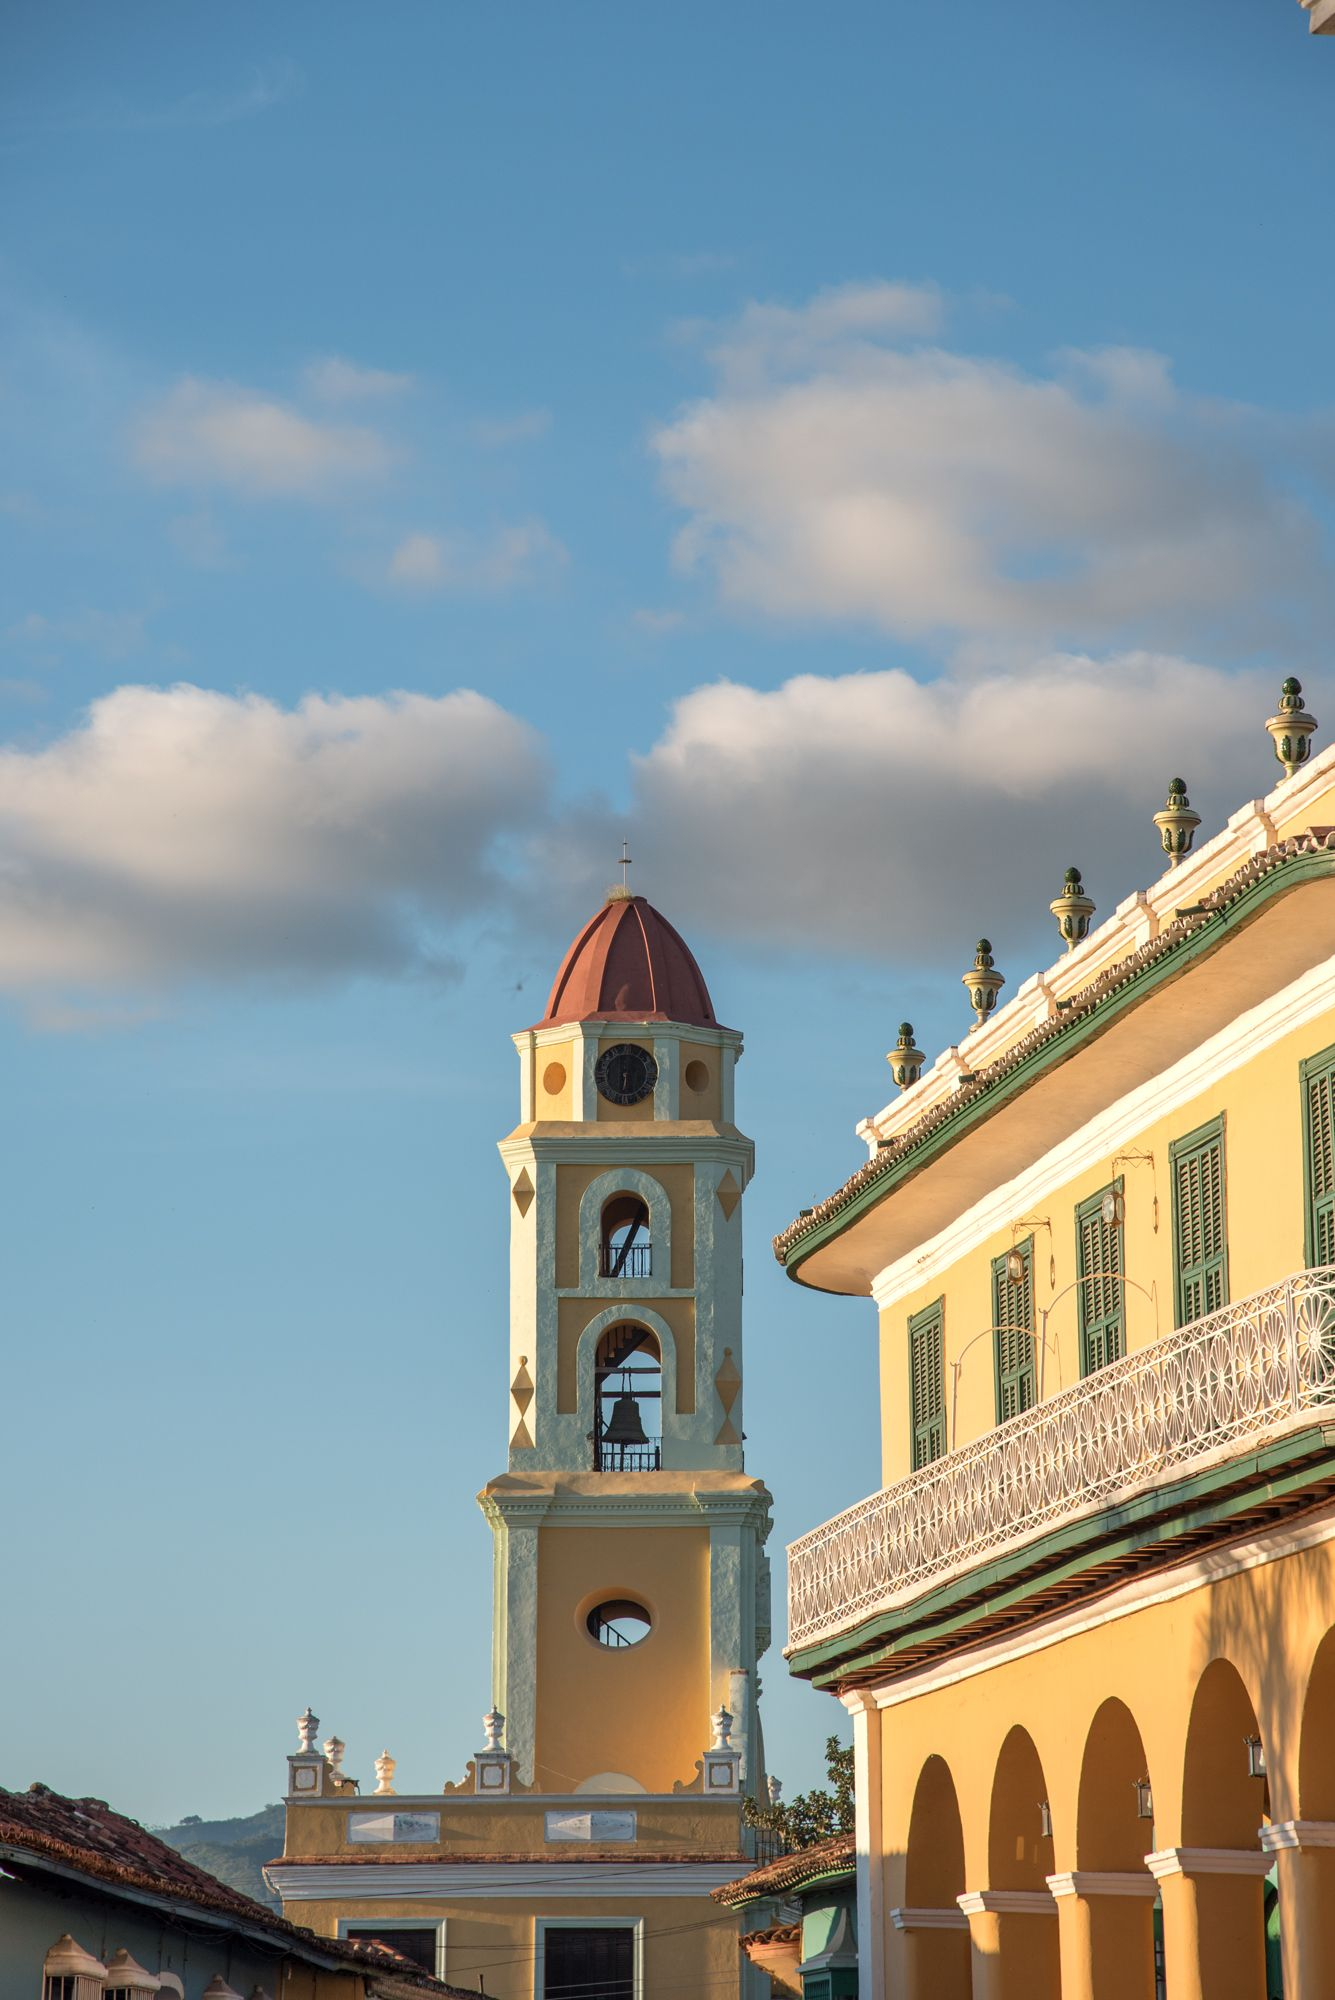 Views from Trinidad Cuba #trinidad #cuba #trinidadcuba #travelcuba